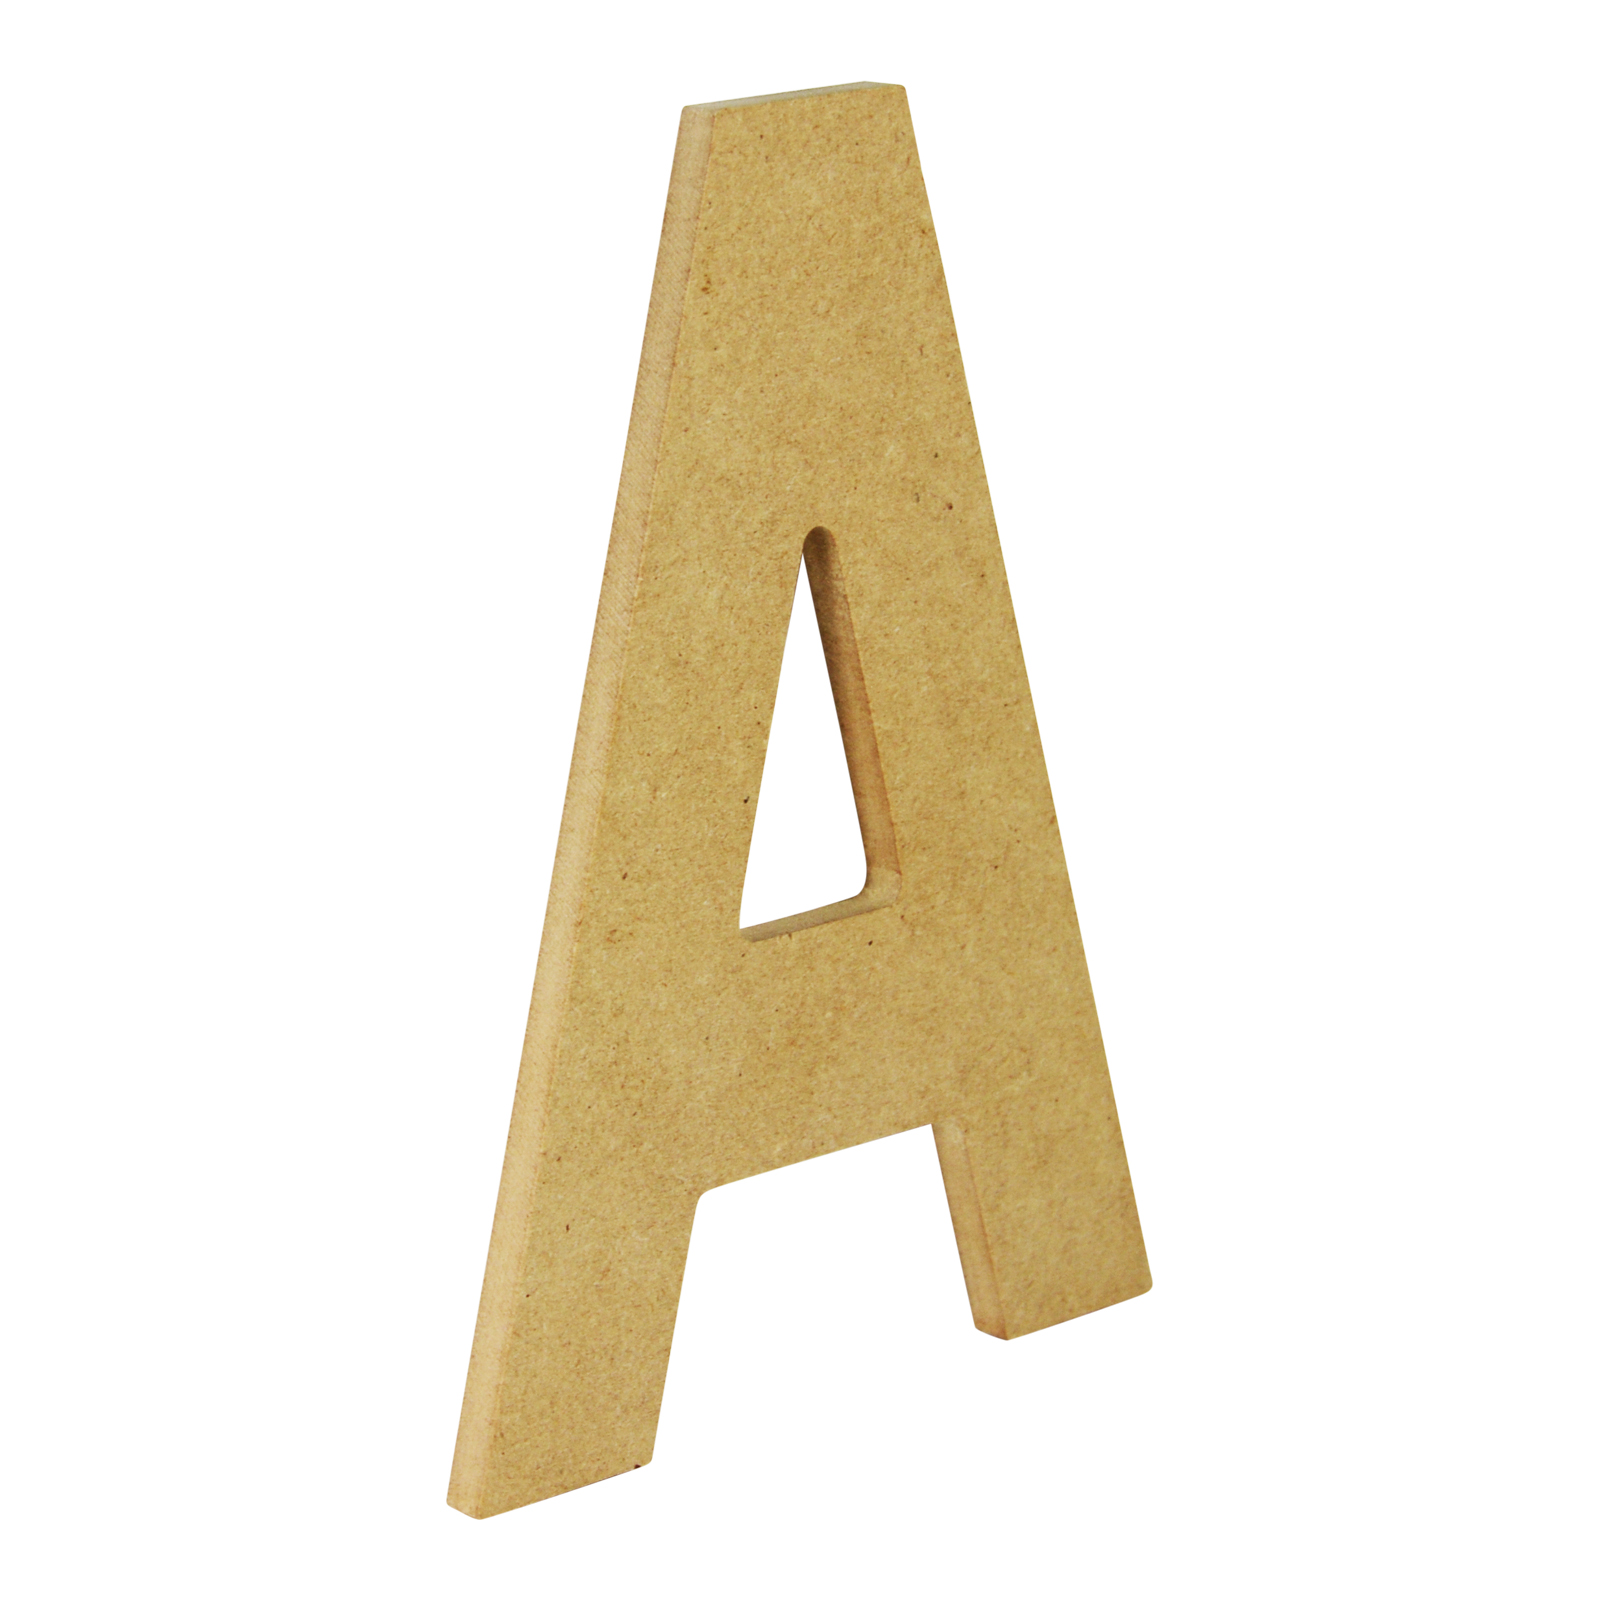 wood letter - Anta.expocoaching.co